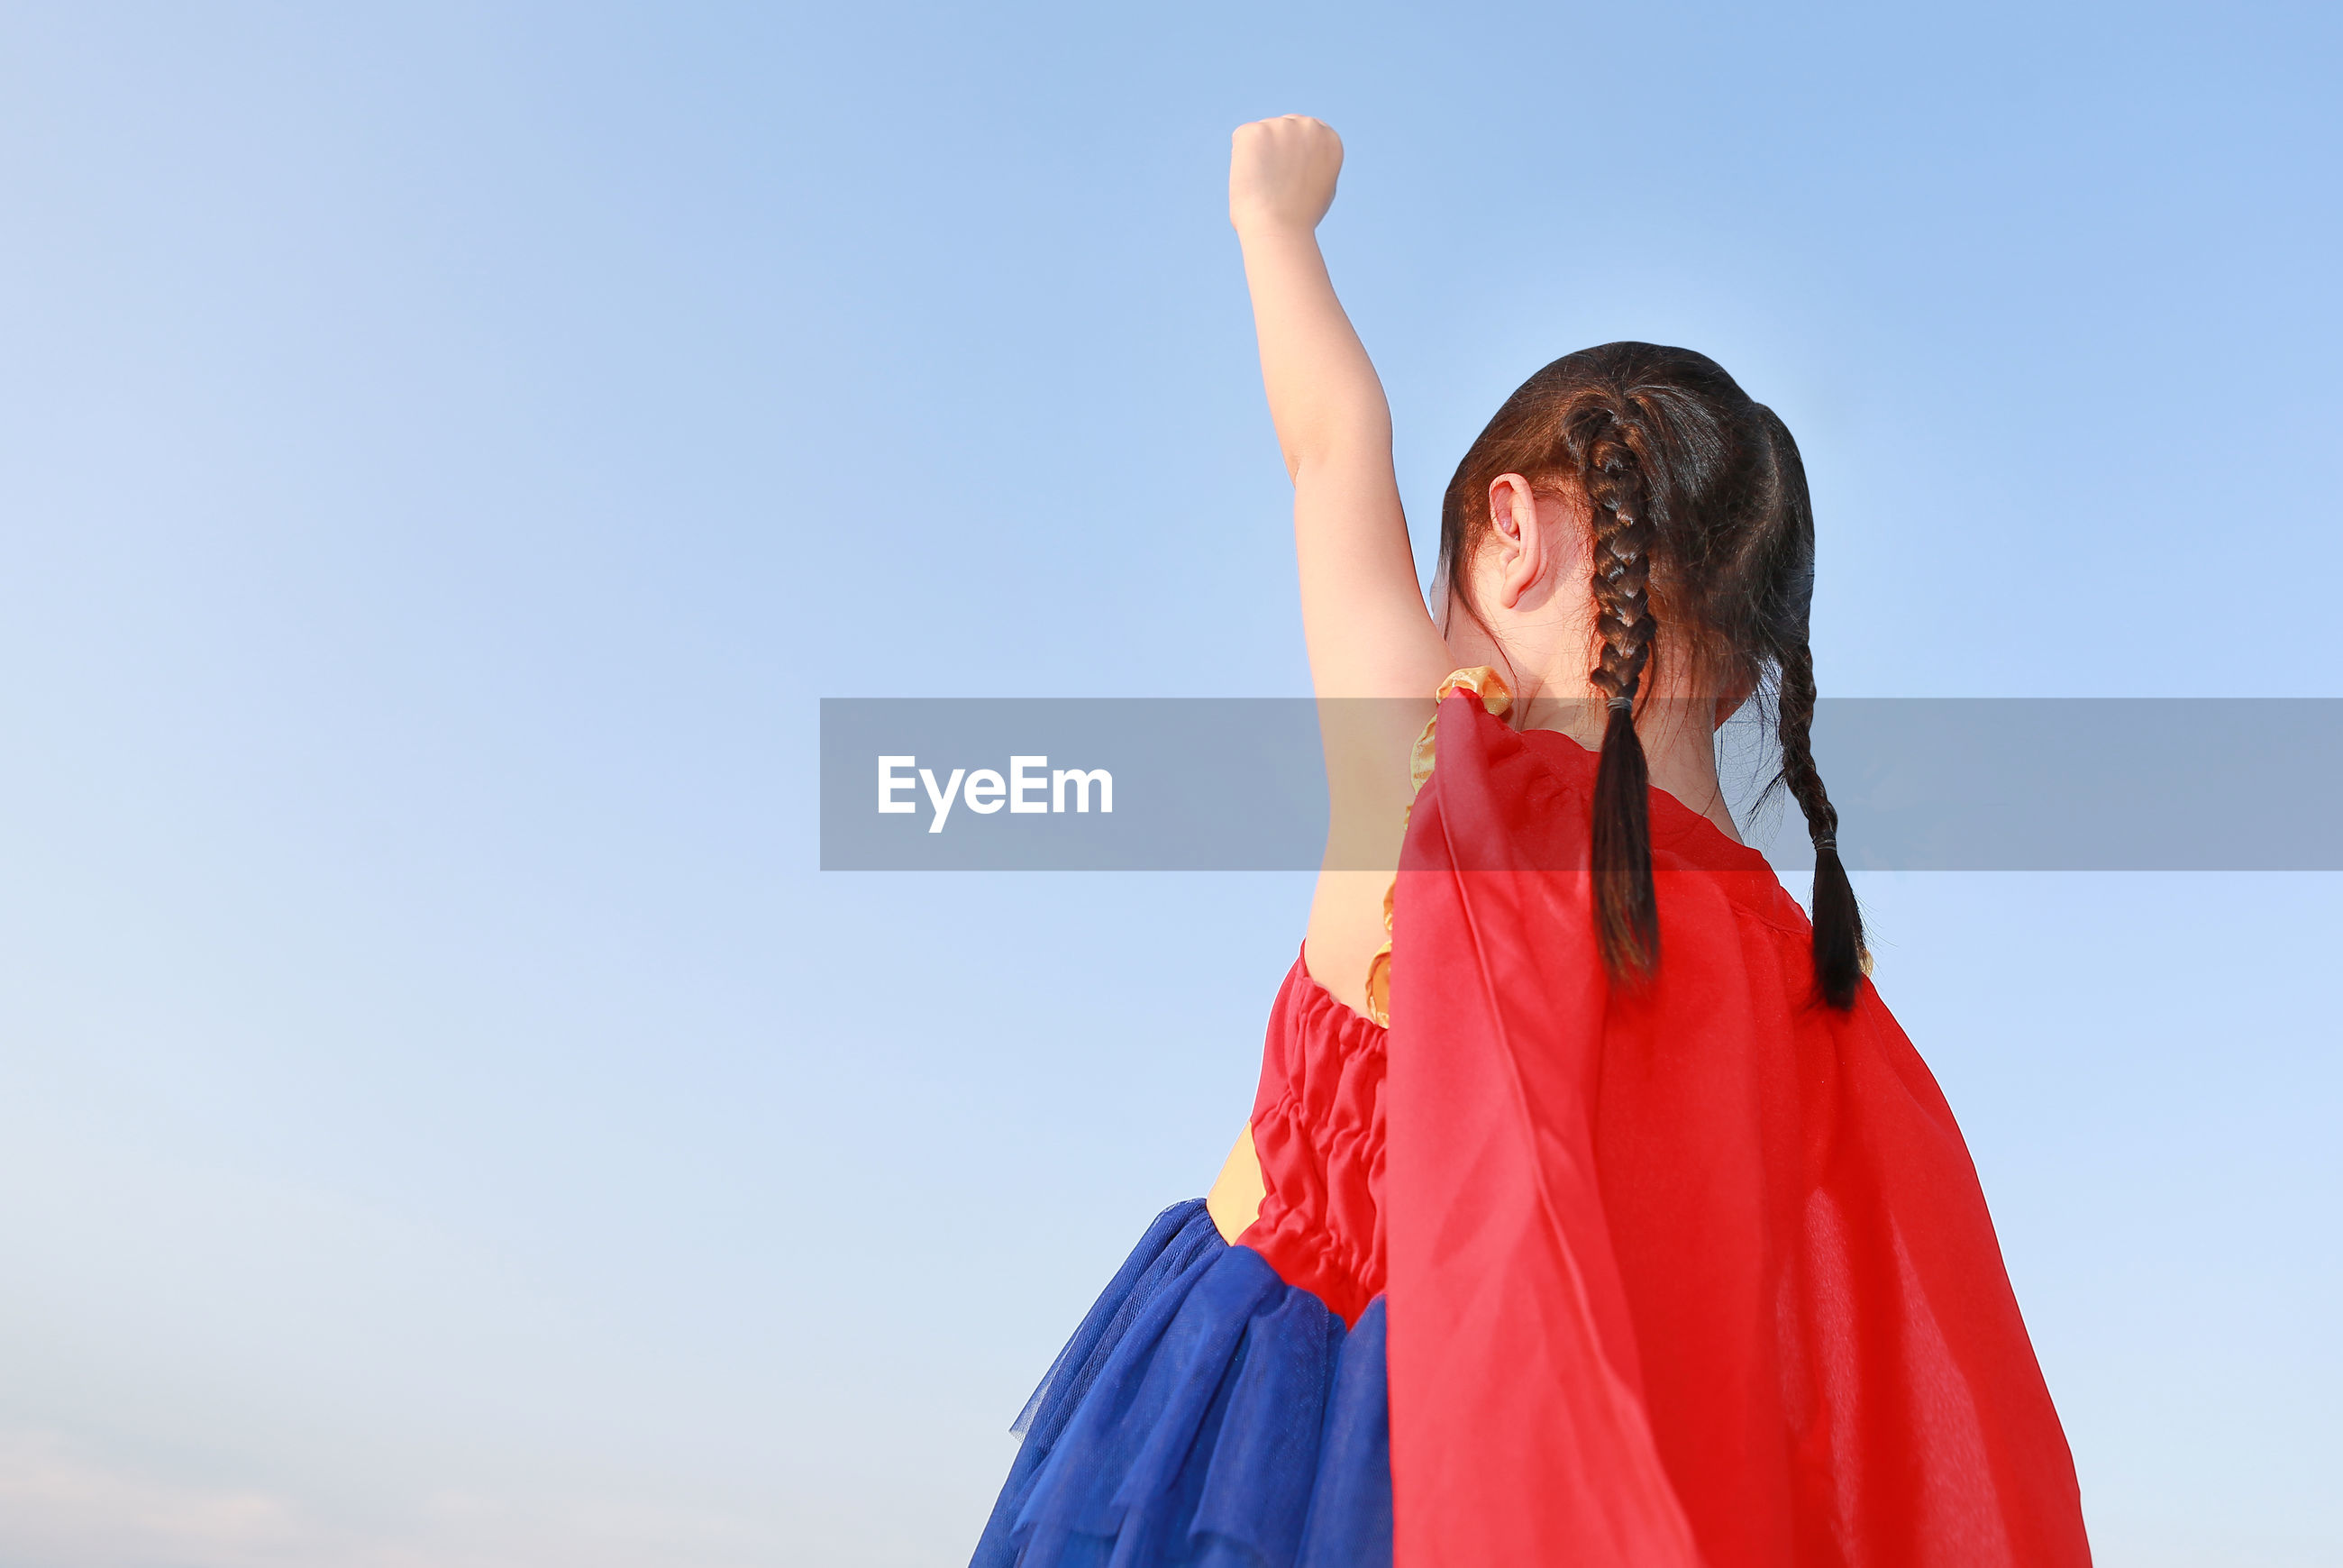 Low angle view of girl with hand raised standing against clear blue sky